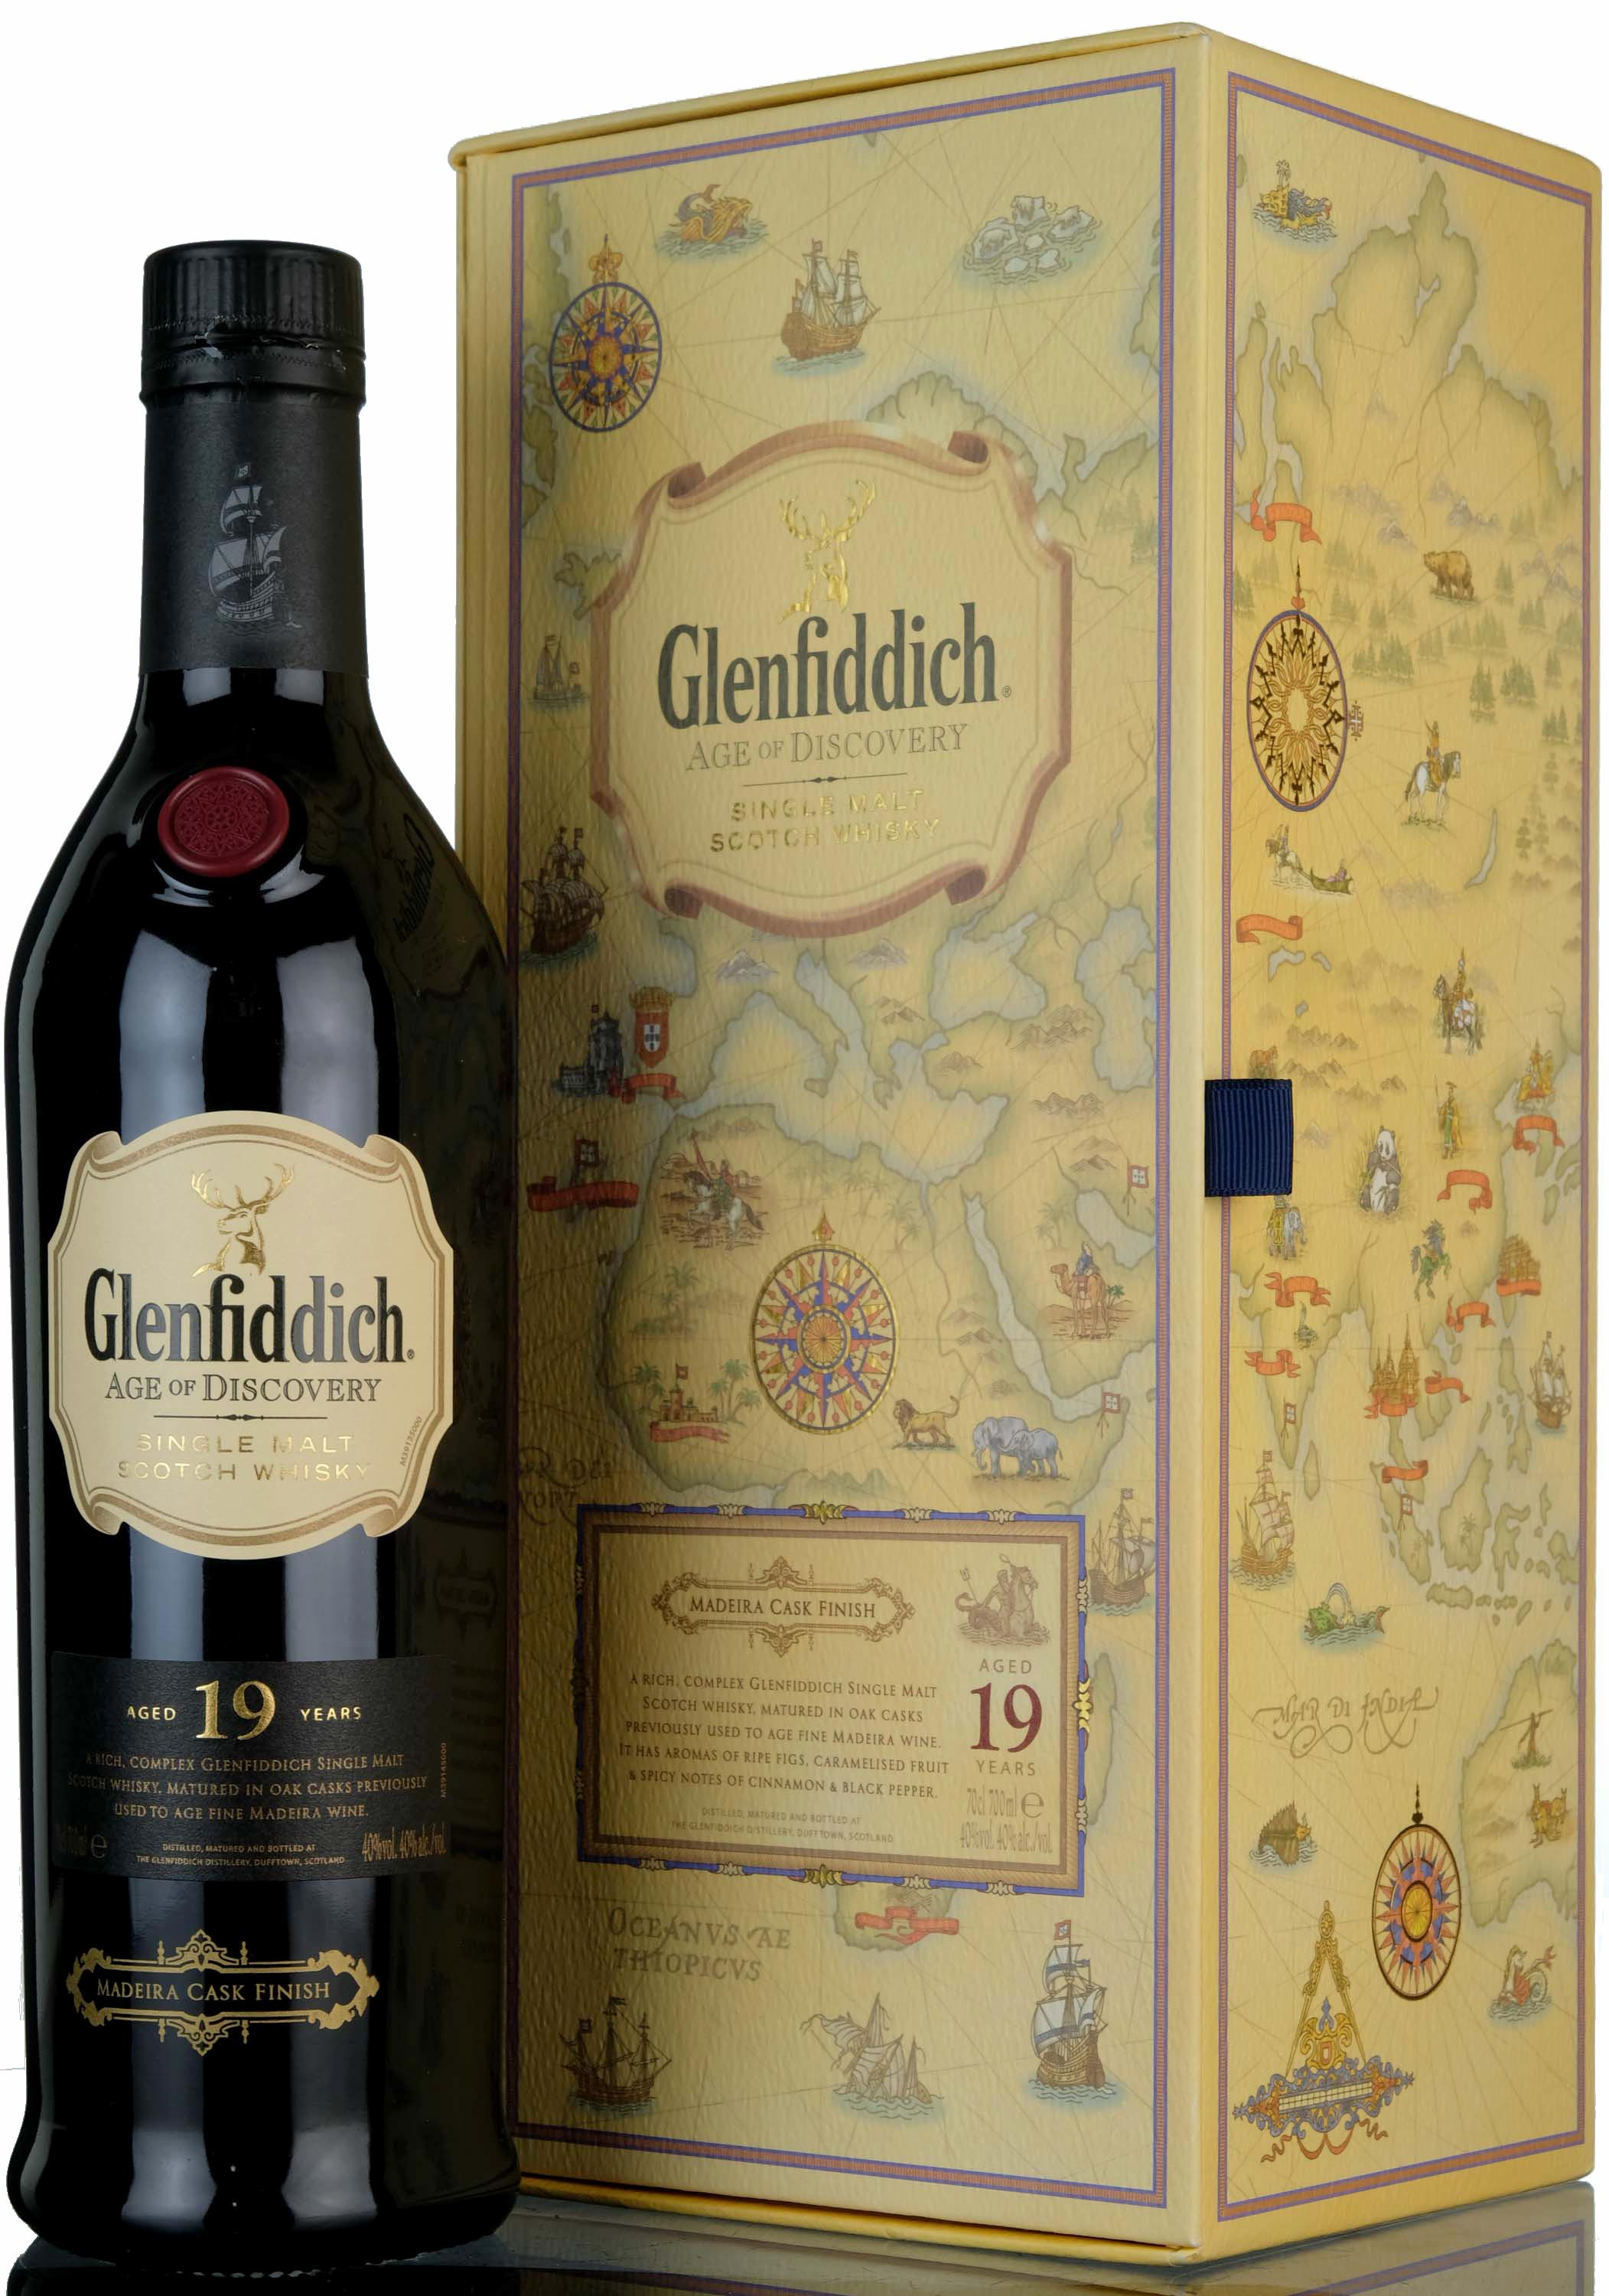 glenfiddich 19 year old - age of discovery - madeira cask finish